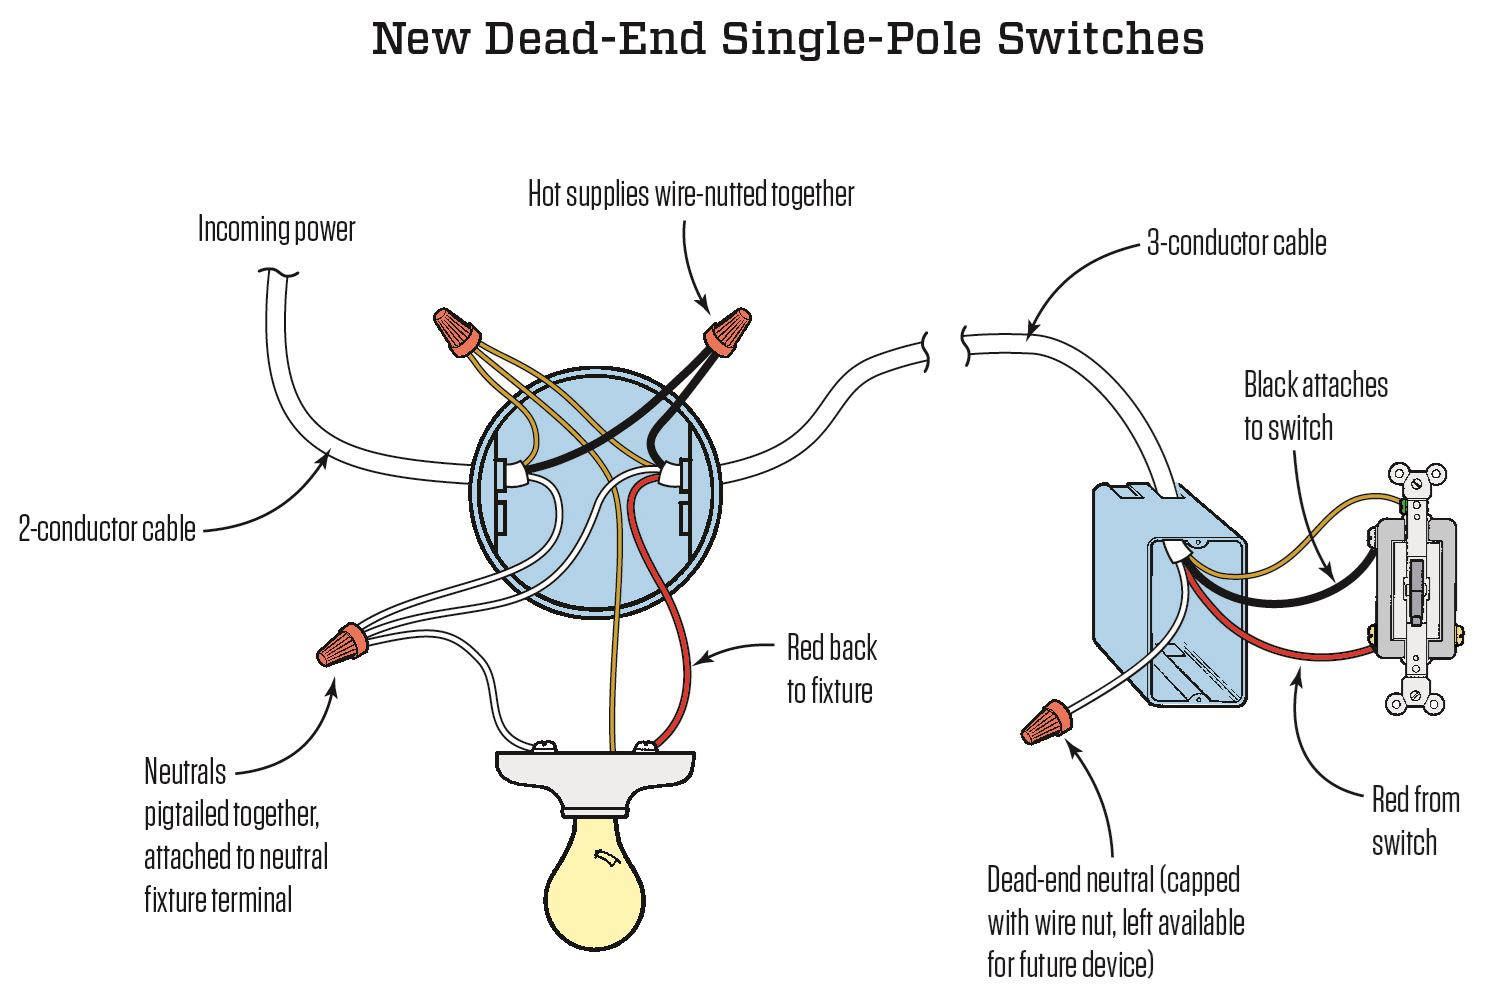 769345664 0515 jlc cev illo 1 tcm96 2202170 dead end single pole switches jlc online electrical wiring a single pole switch at webbmarketing.co